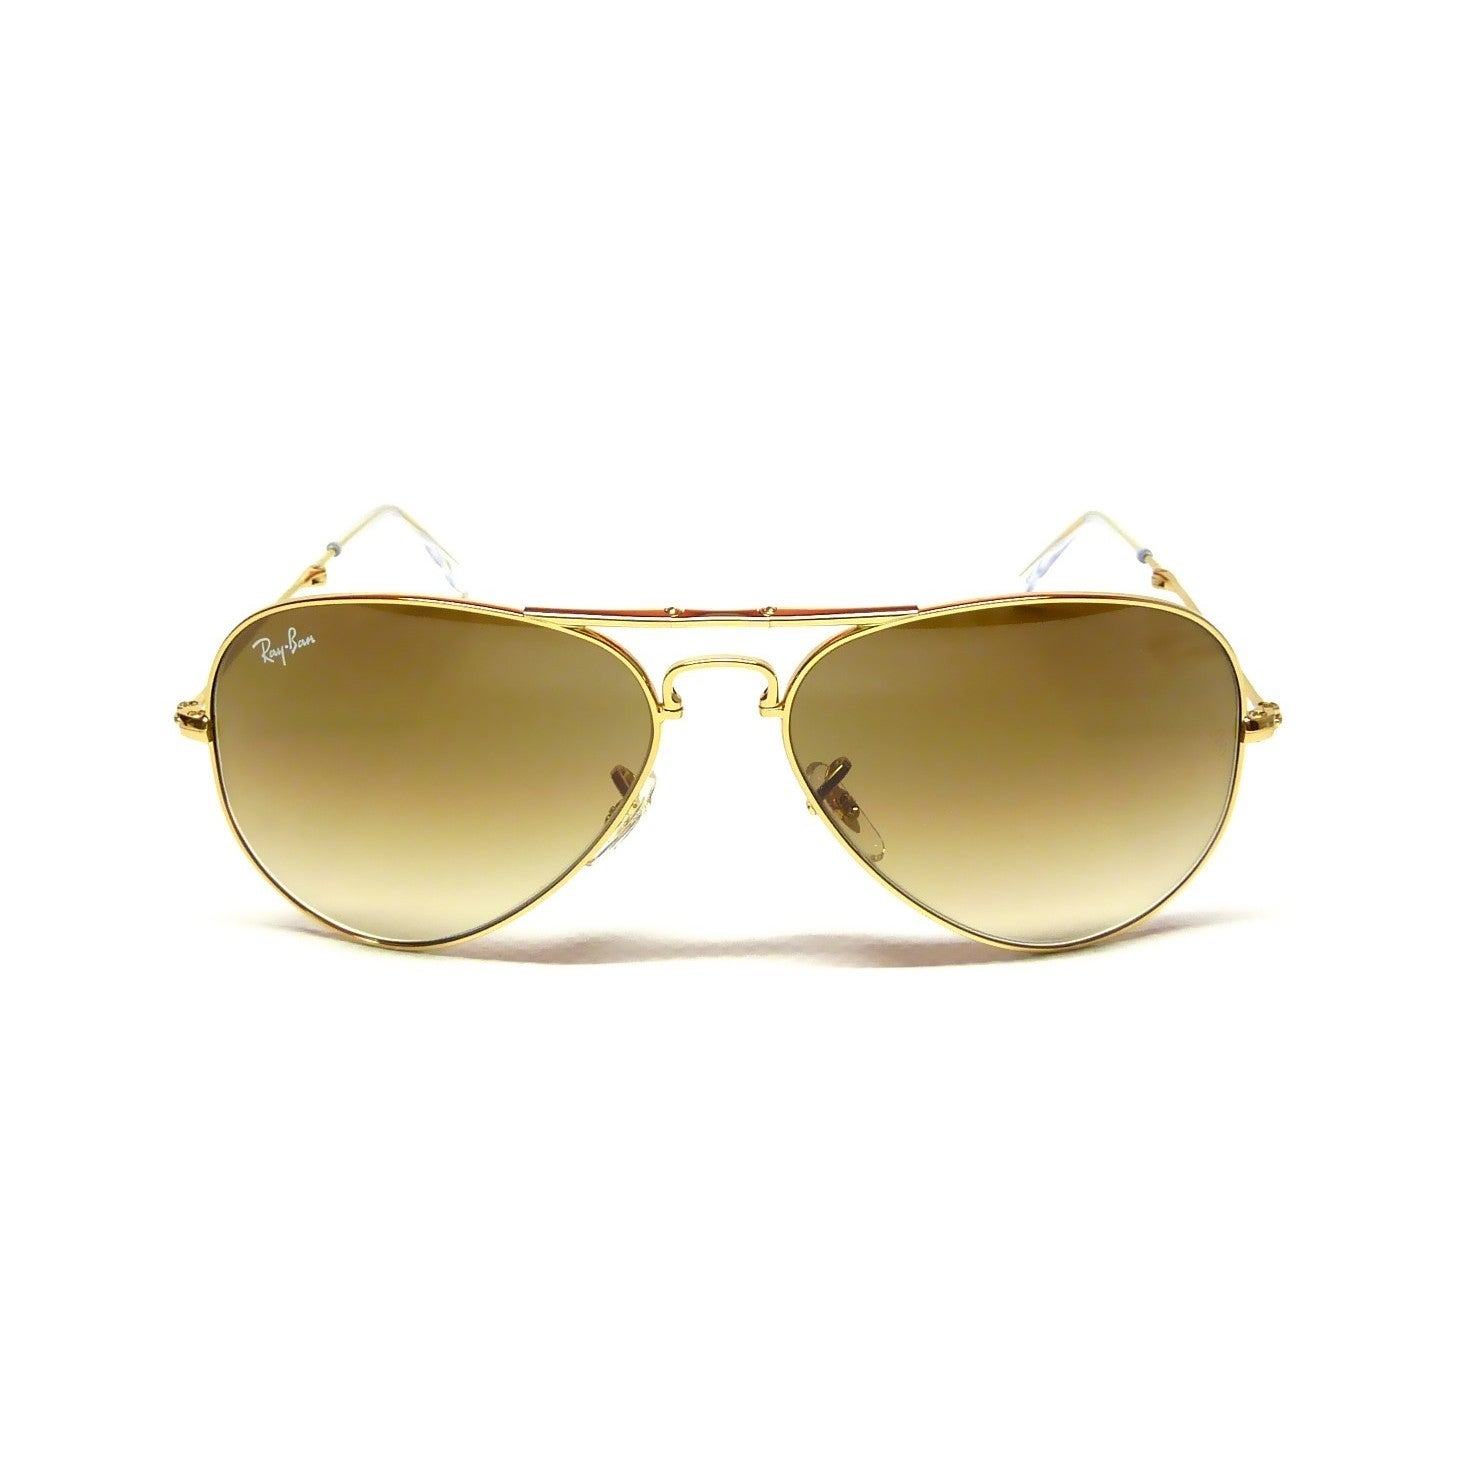 5d4cf7b277fa Shop Ray-Ban RB3479 001 51 Unisex Aviator Folding Gold Frame Brown Gradient  Lens Sunglasses - Free Shipping Today - Overstock - 15002993